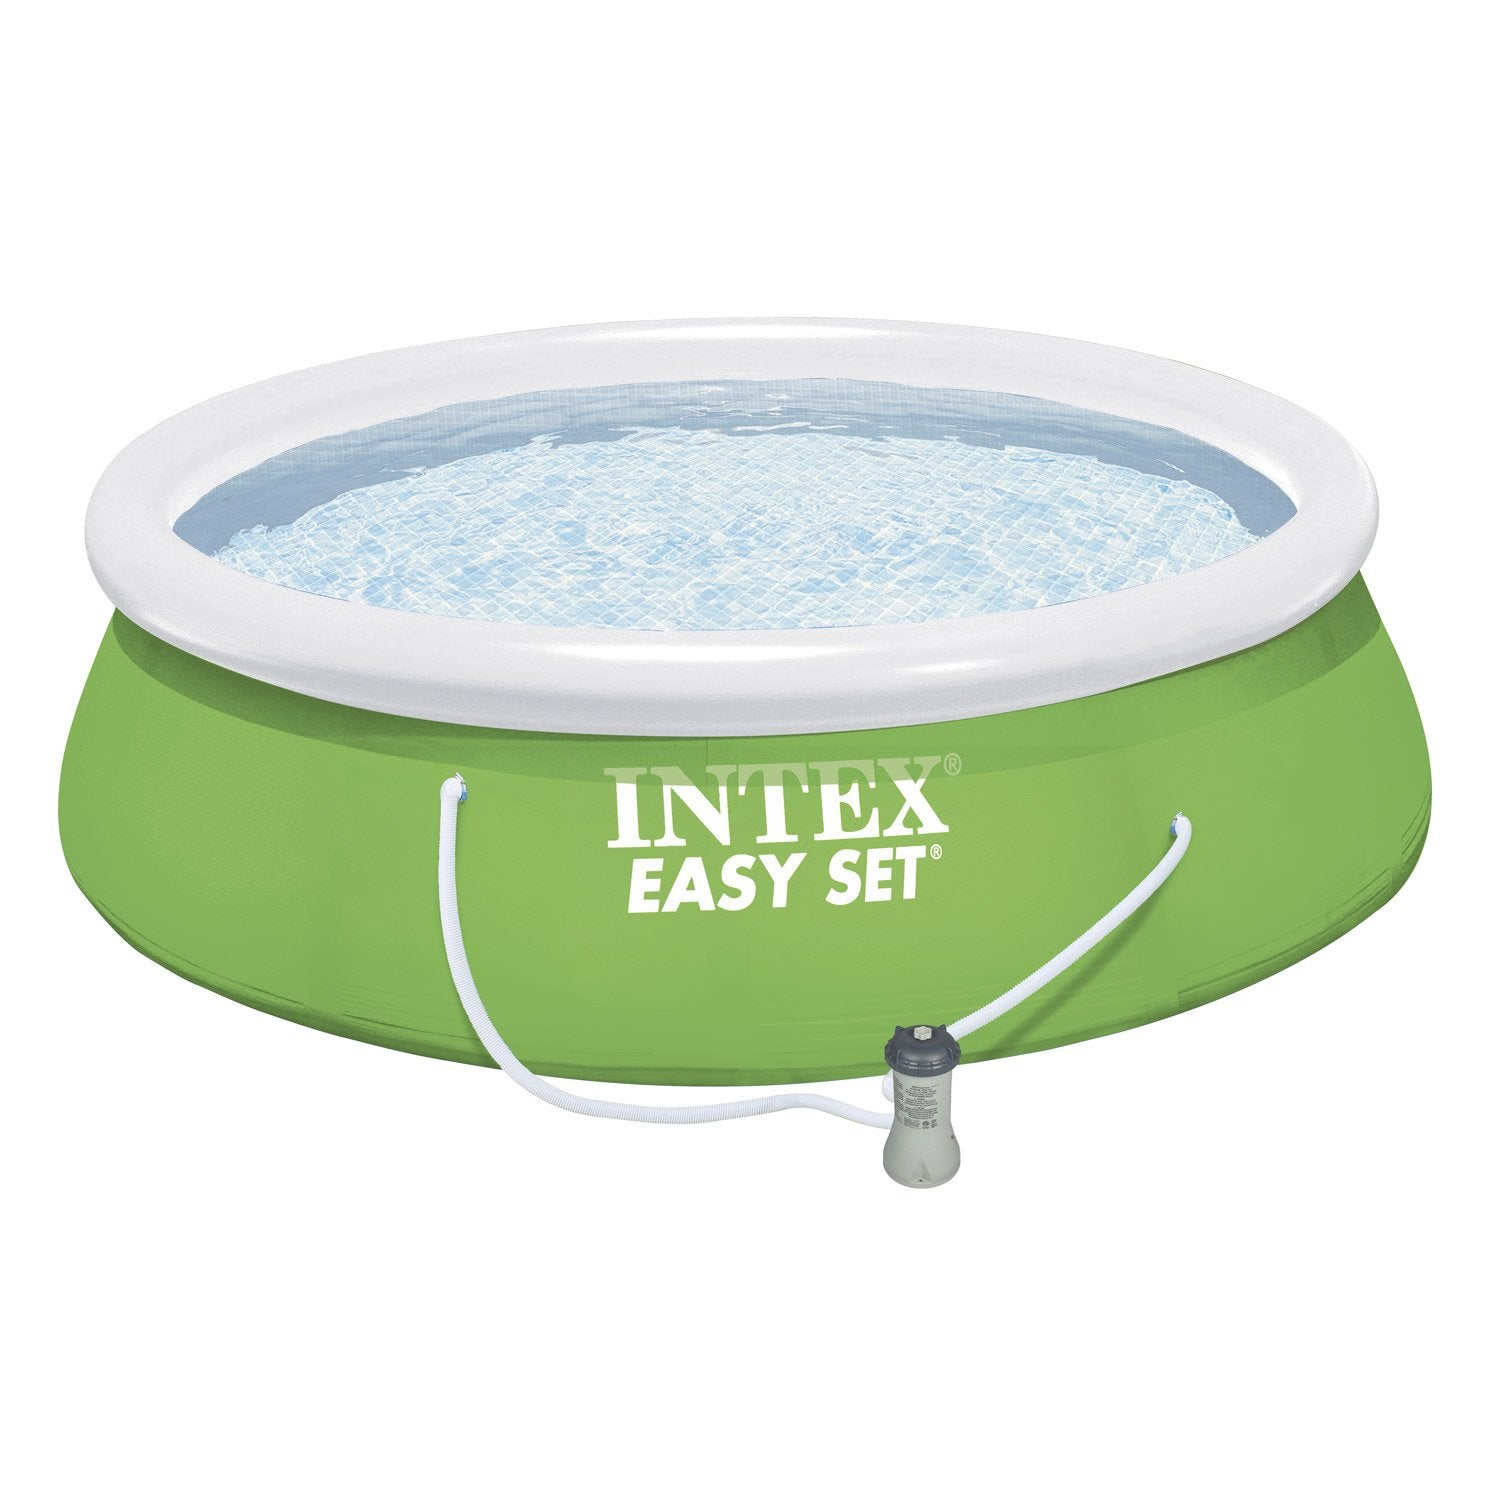 Piscine hors sol autoportante gonflable suppression intex for Piscine hors sol d occasion